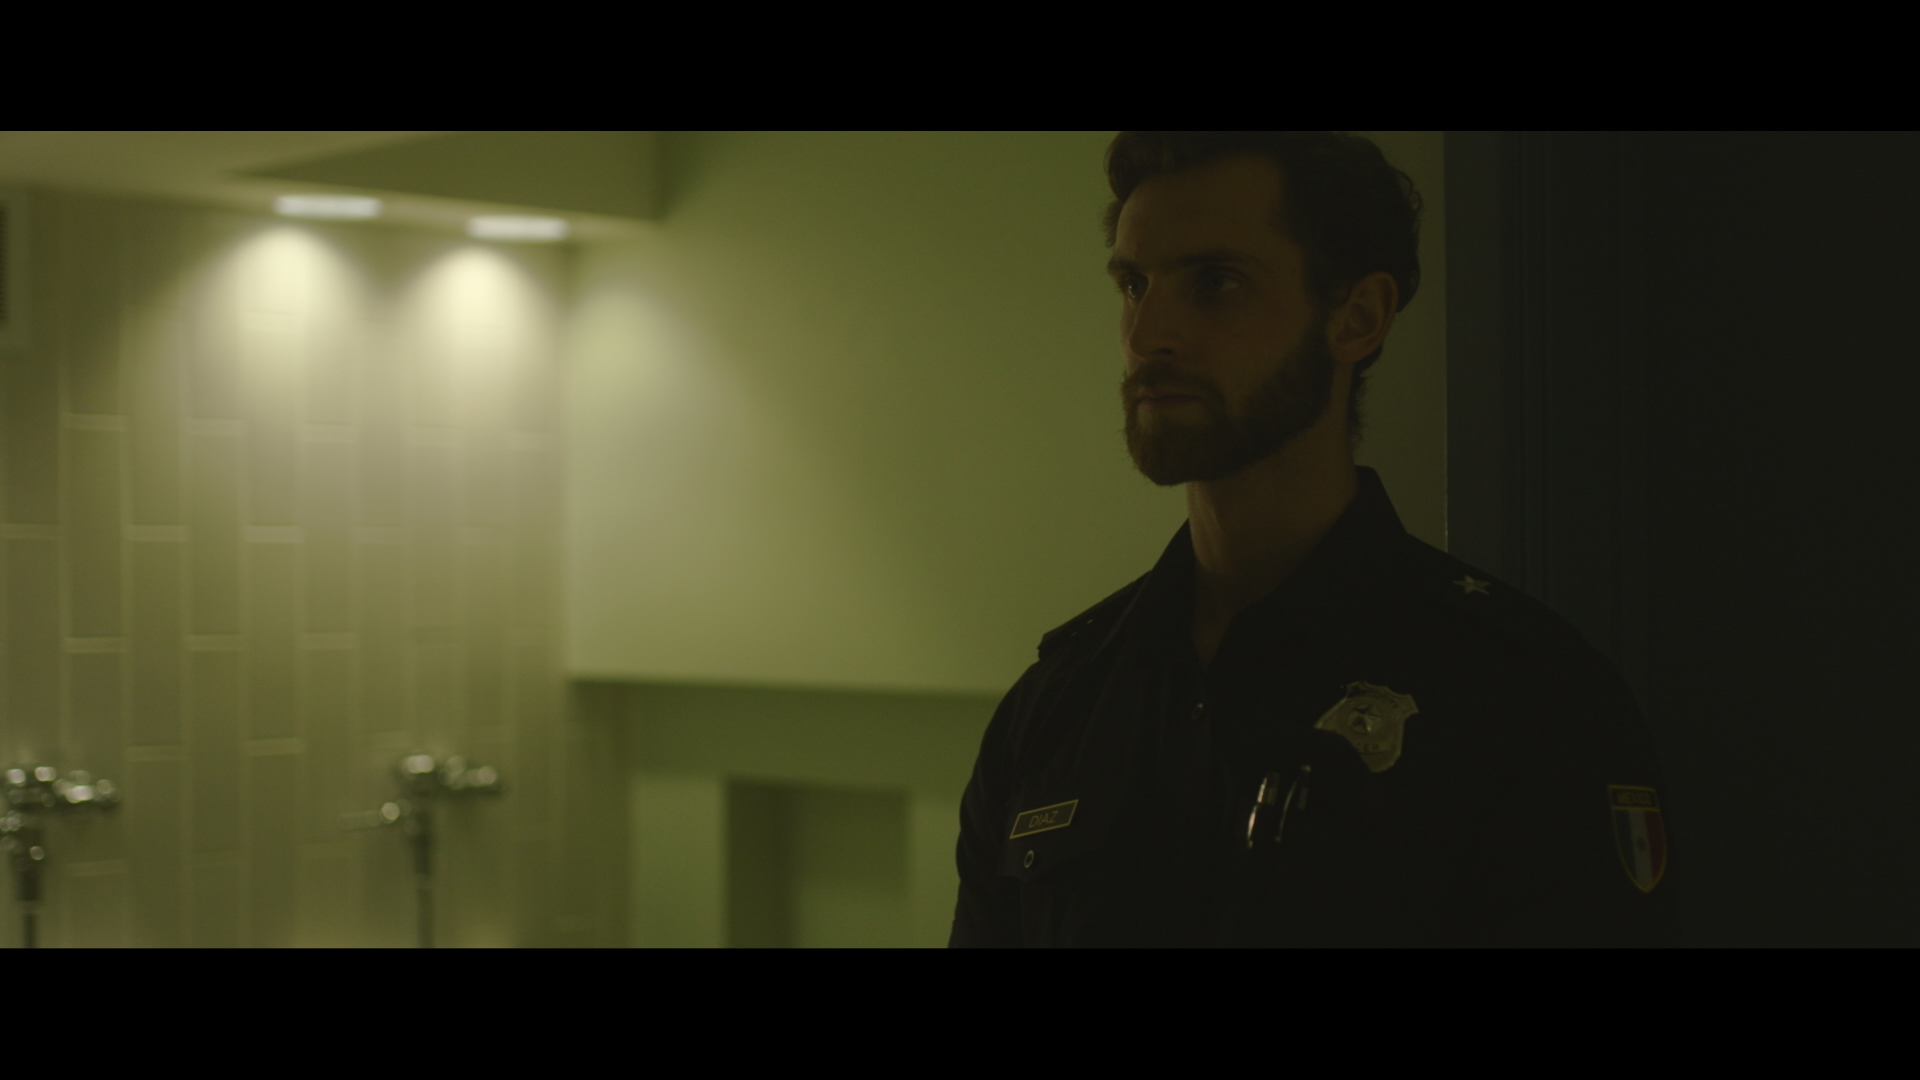 Client Work: Still from the short Standby